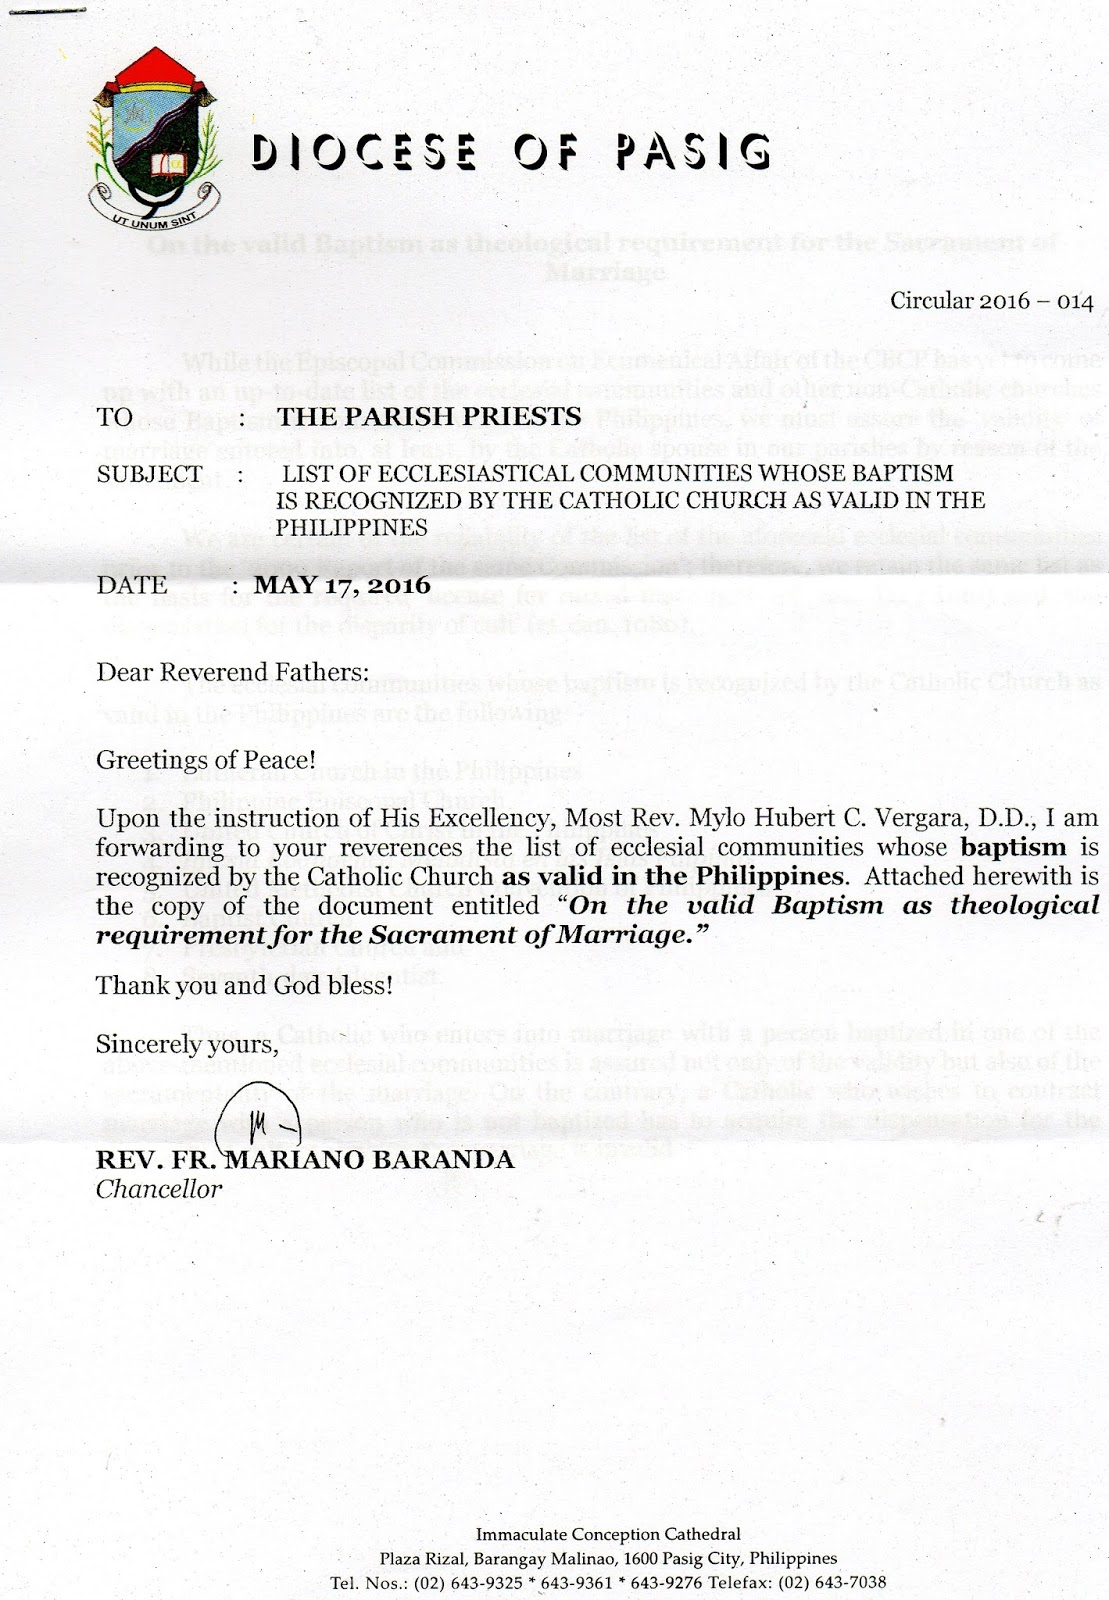 Diocese Of Pasig List Of Ecclesiastical Communities Whose Baptism